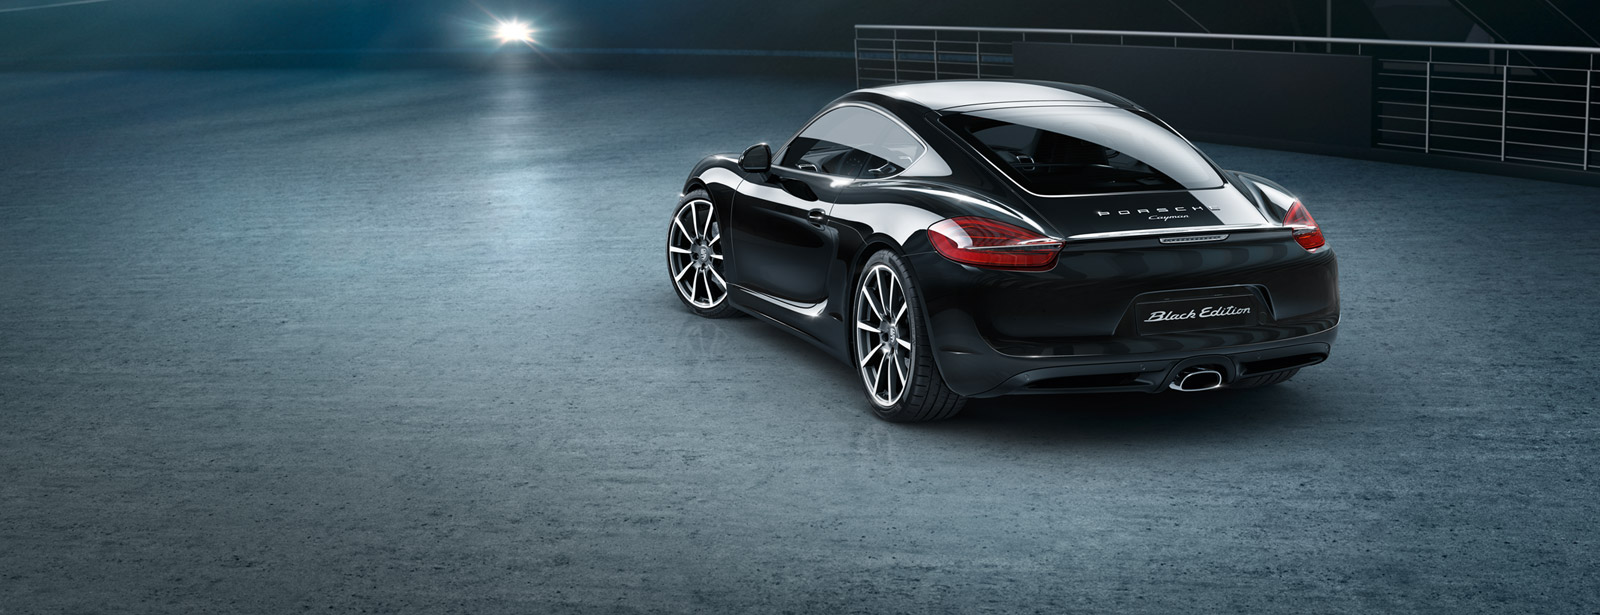 Porsche Cayman Black Edition